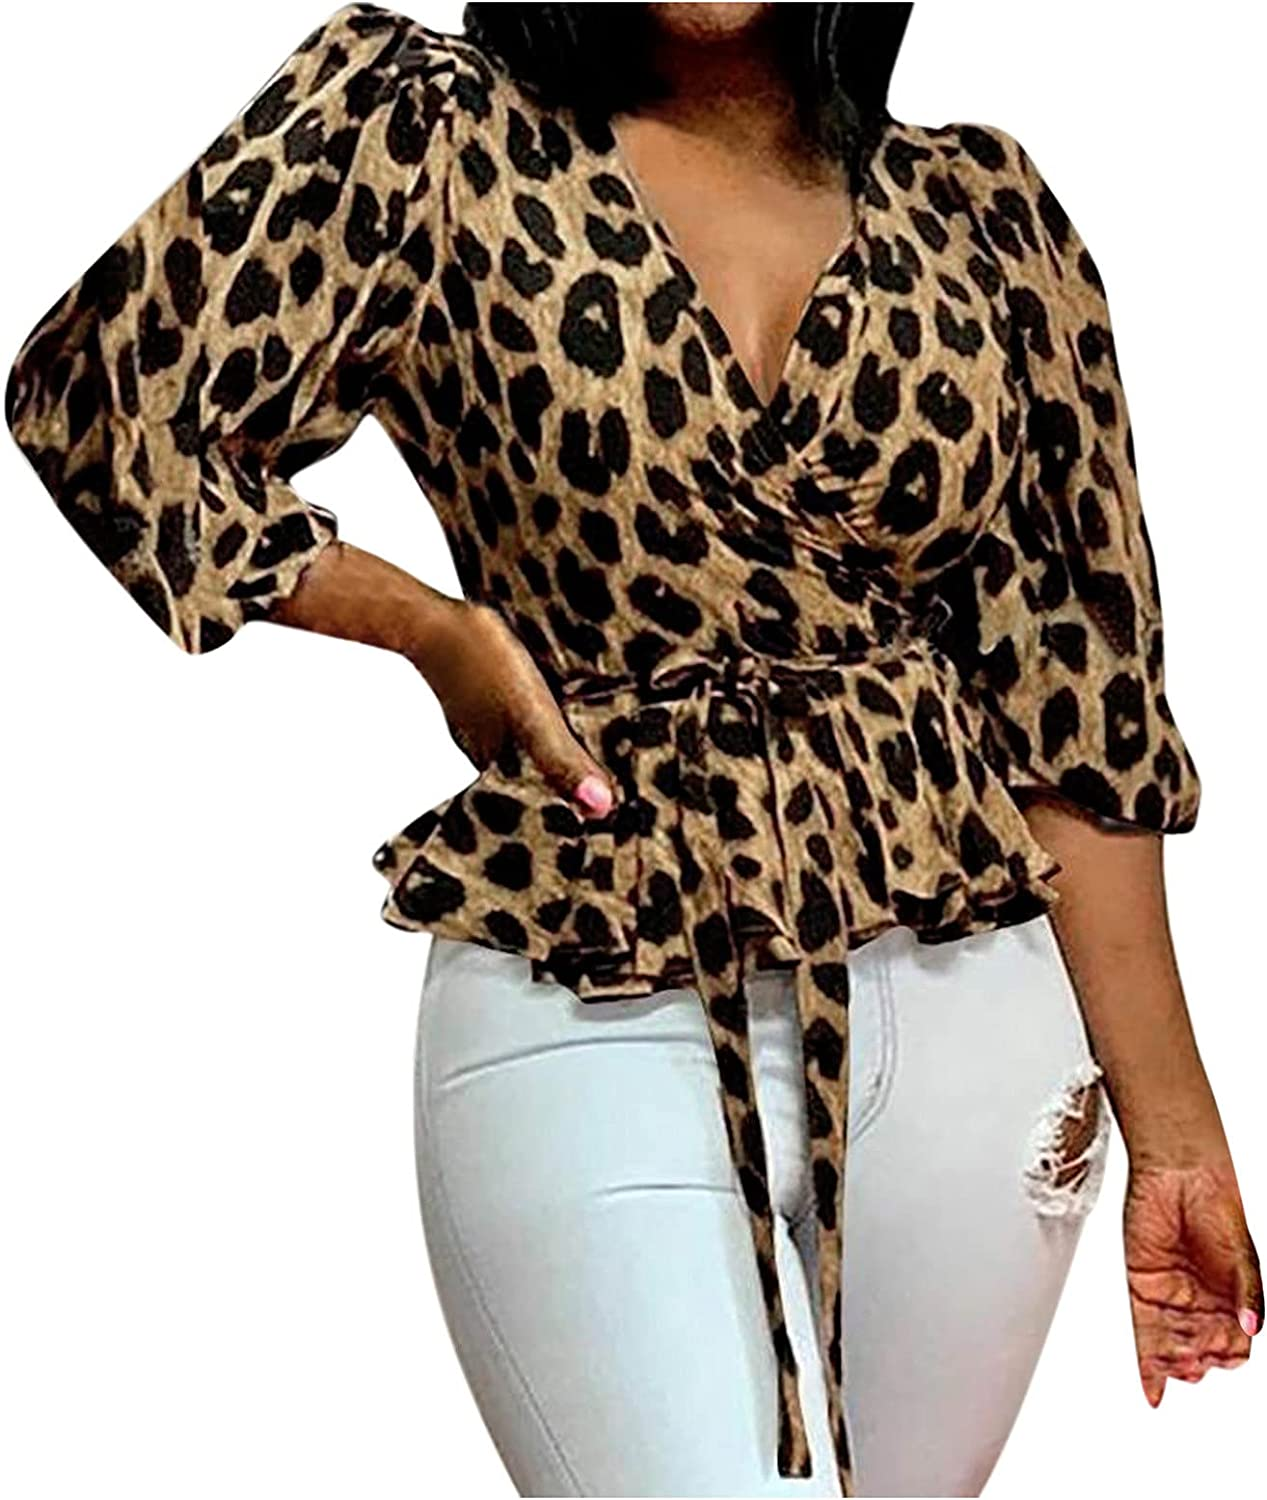 Leopard Short Shirt 2021 new for Women Multi-Layer Sleeve Puff store Wrap Front